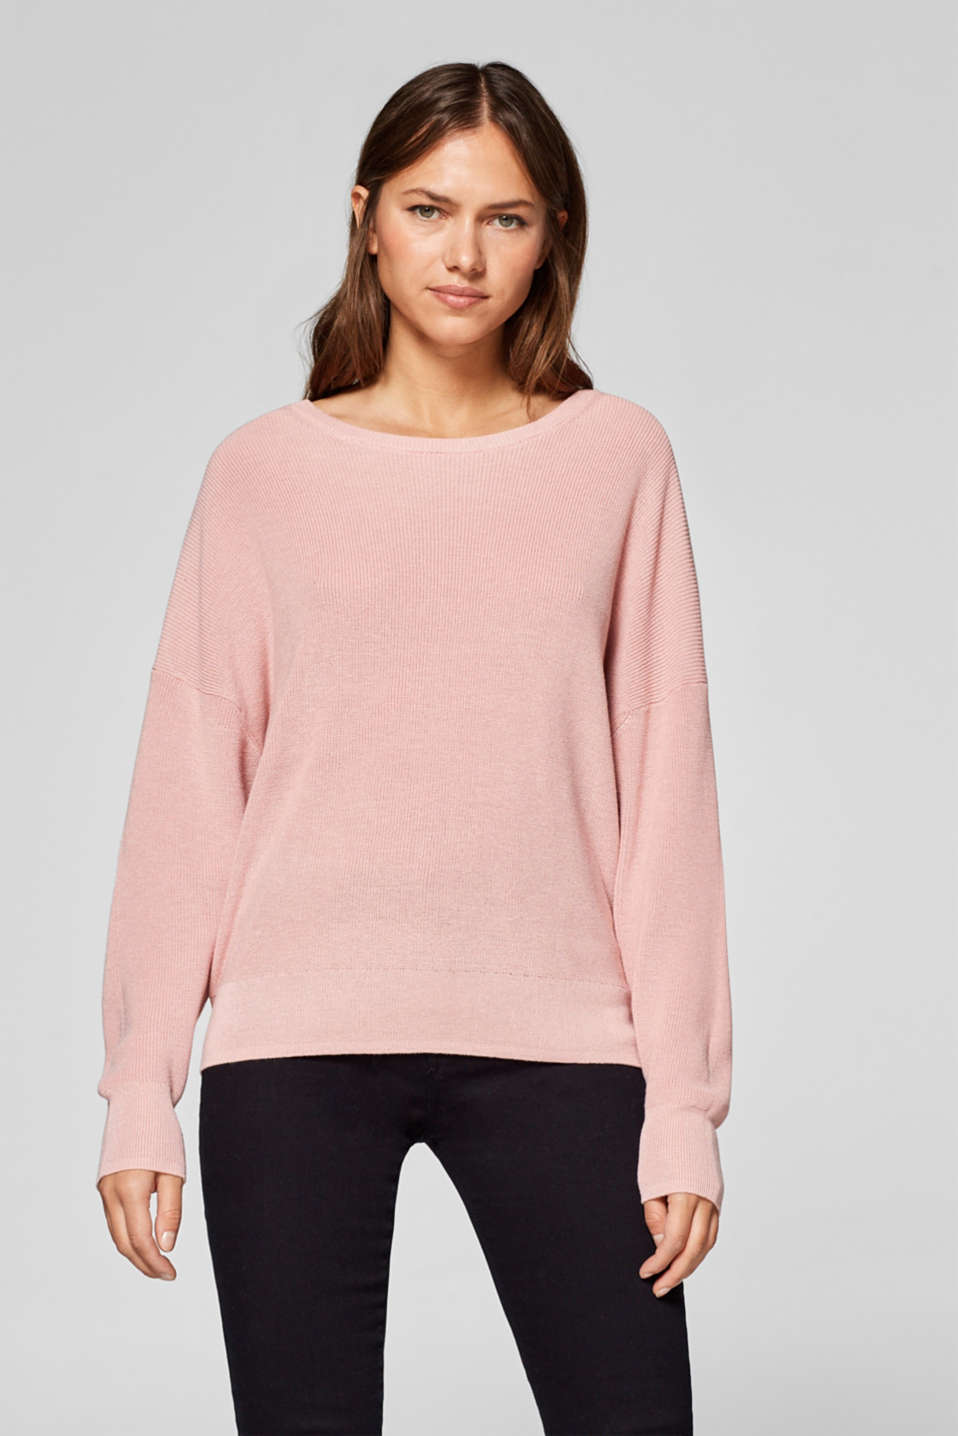 Esprit - Jumper with batwing sleeves and a bow at the back